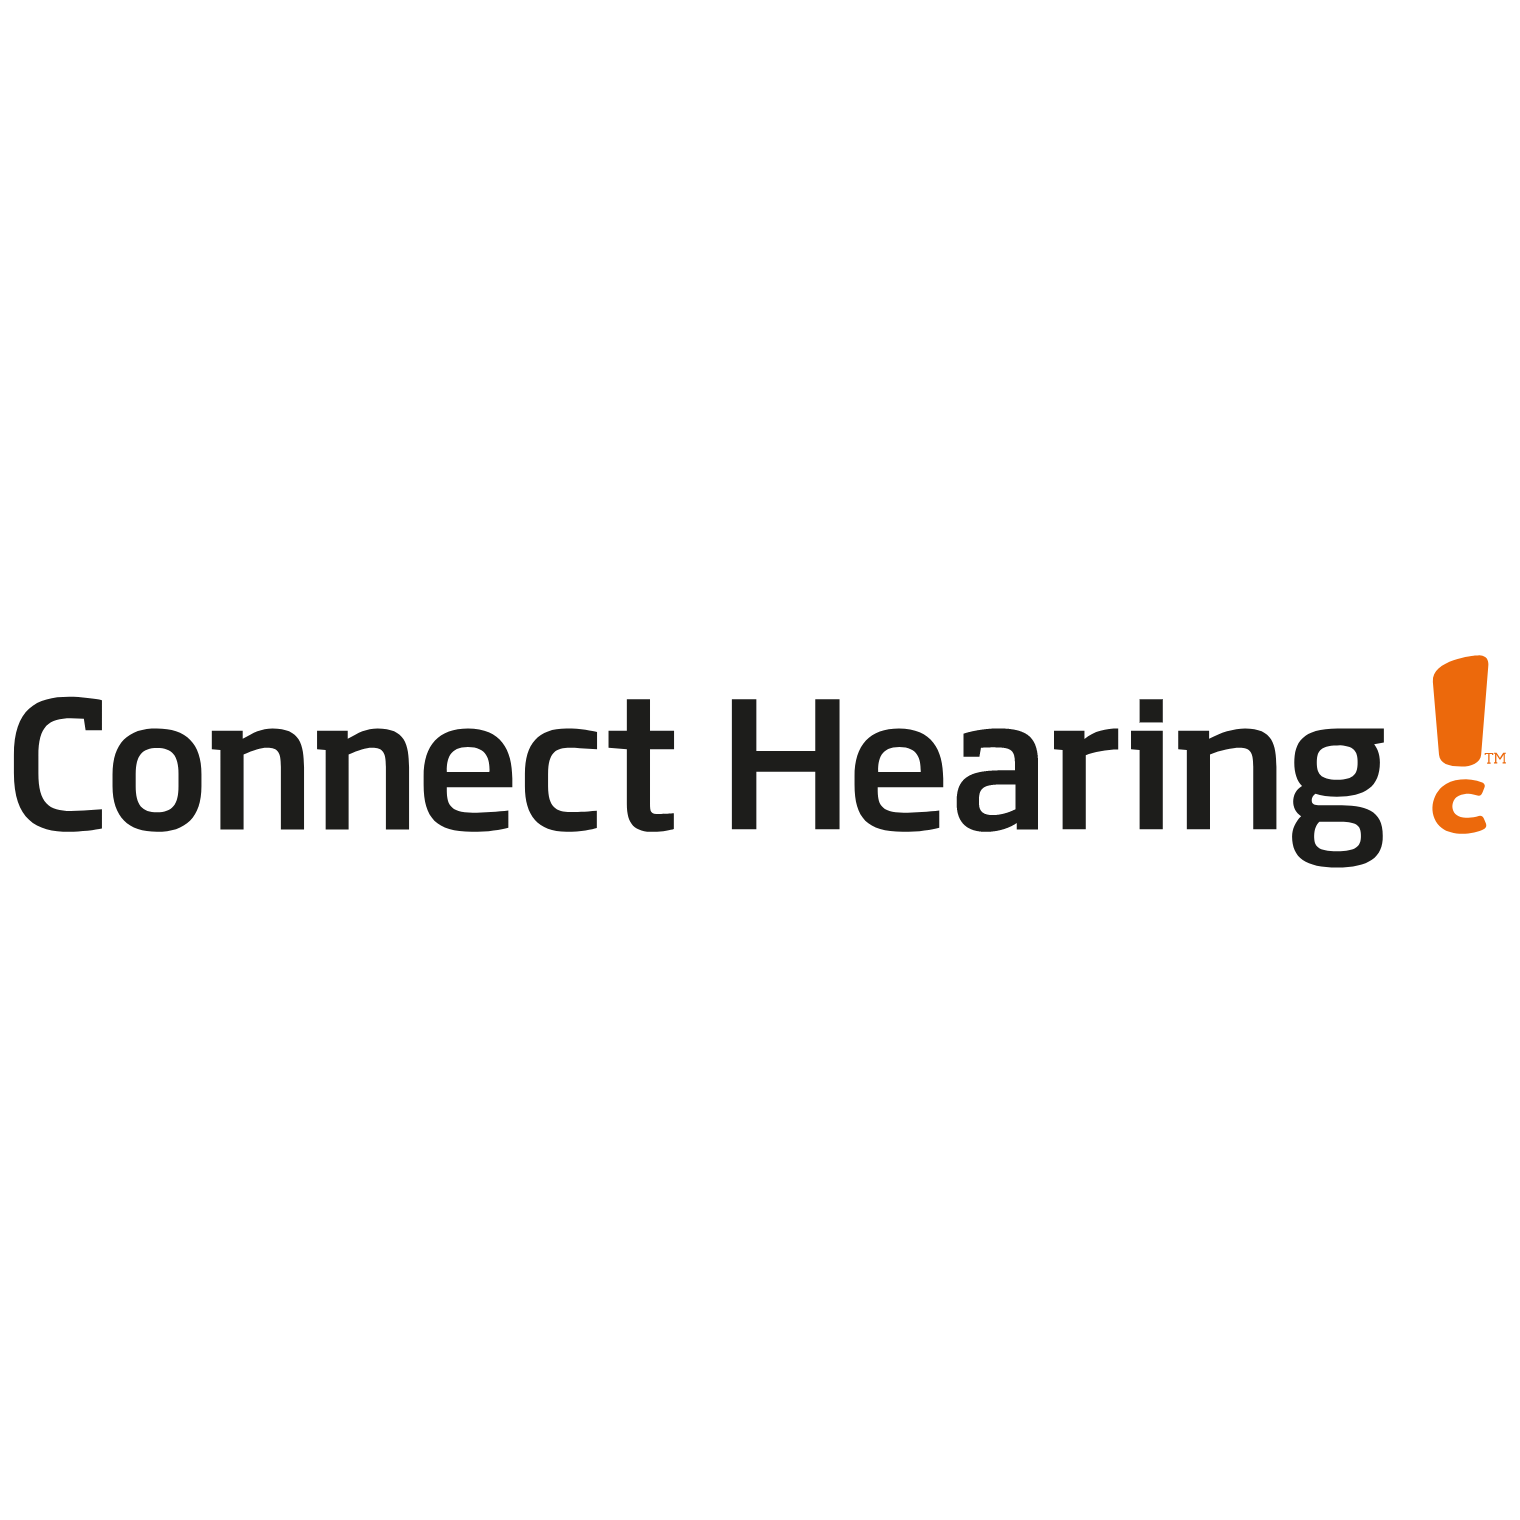 Connect Hearing - Balwyn, VIC 3103 - (03) 9656 2270 | ShowMeLocal.com